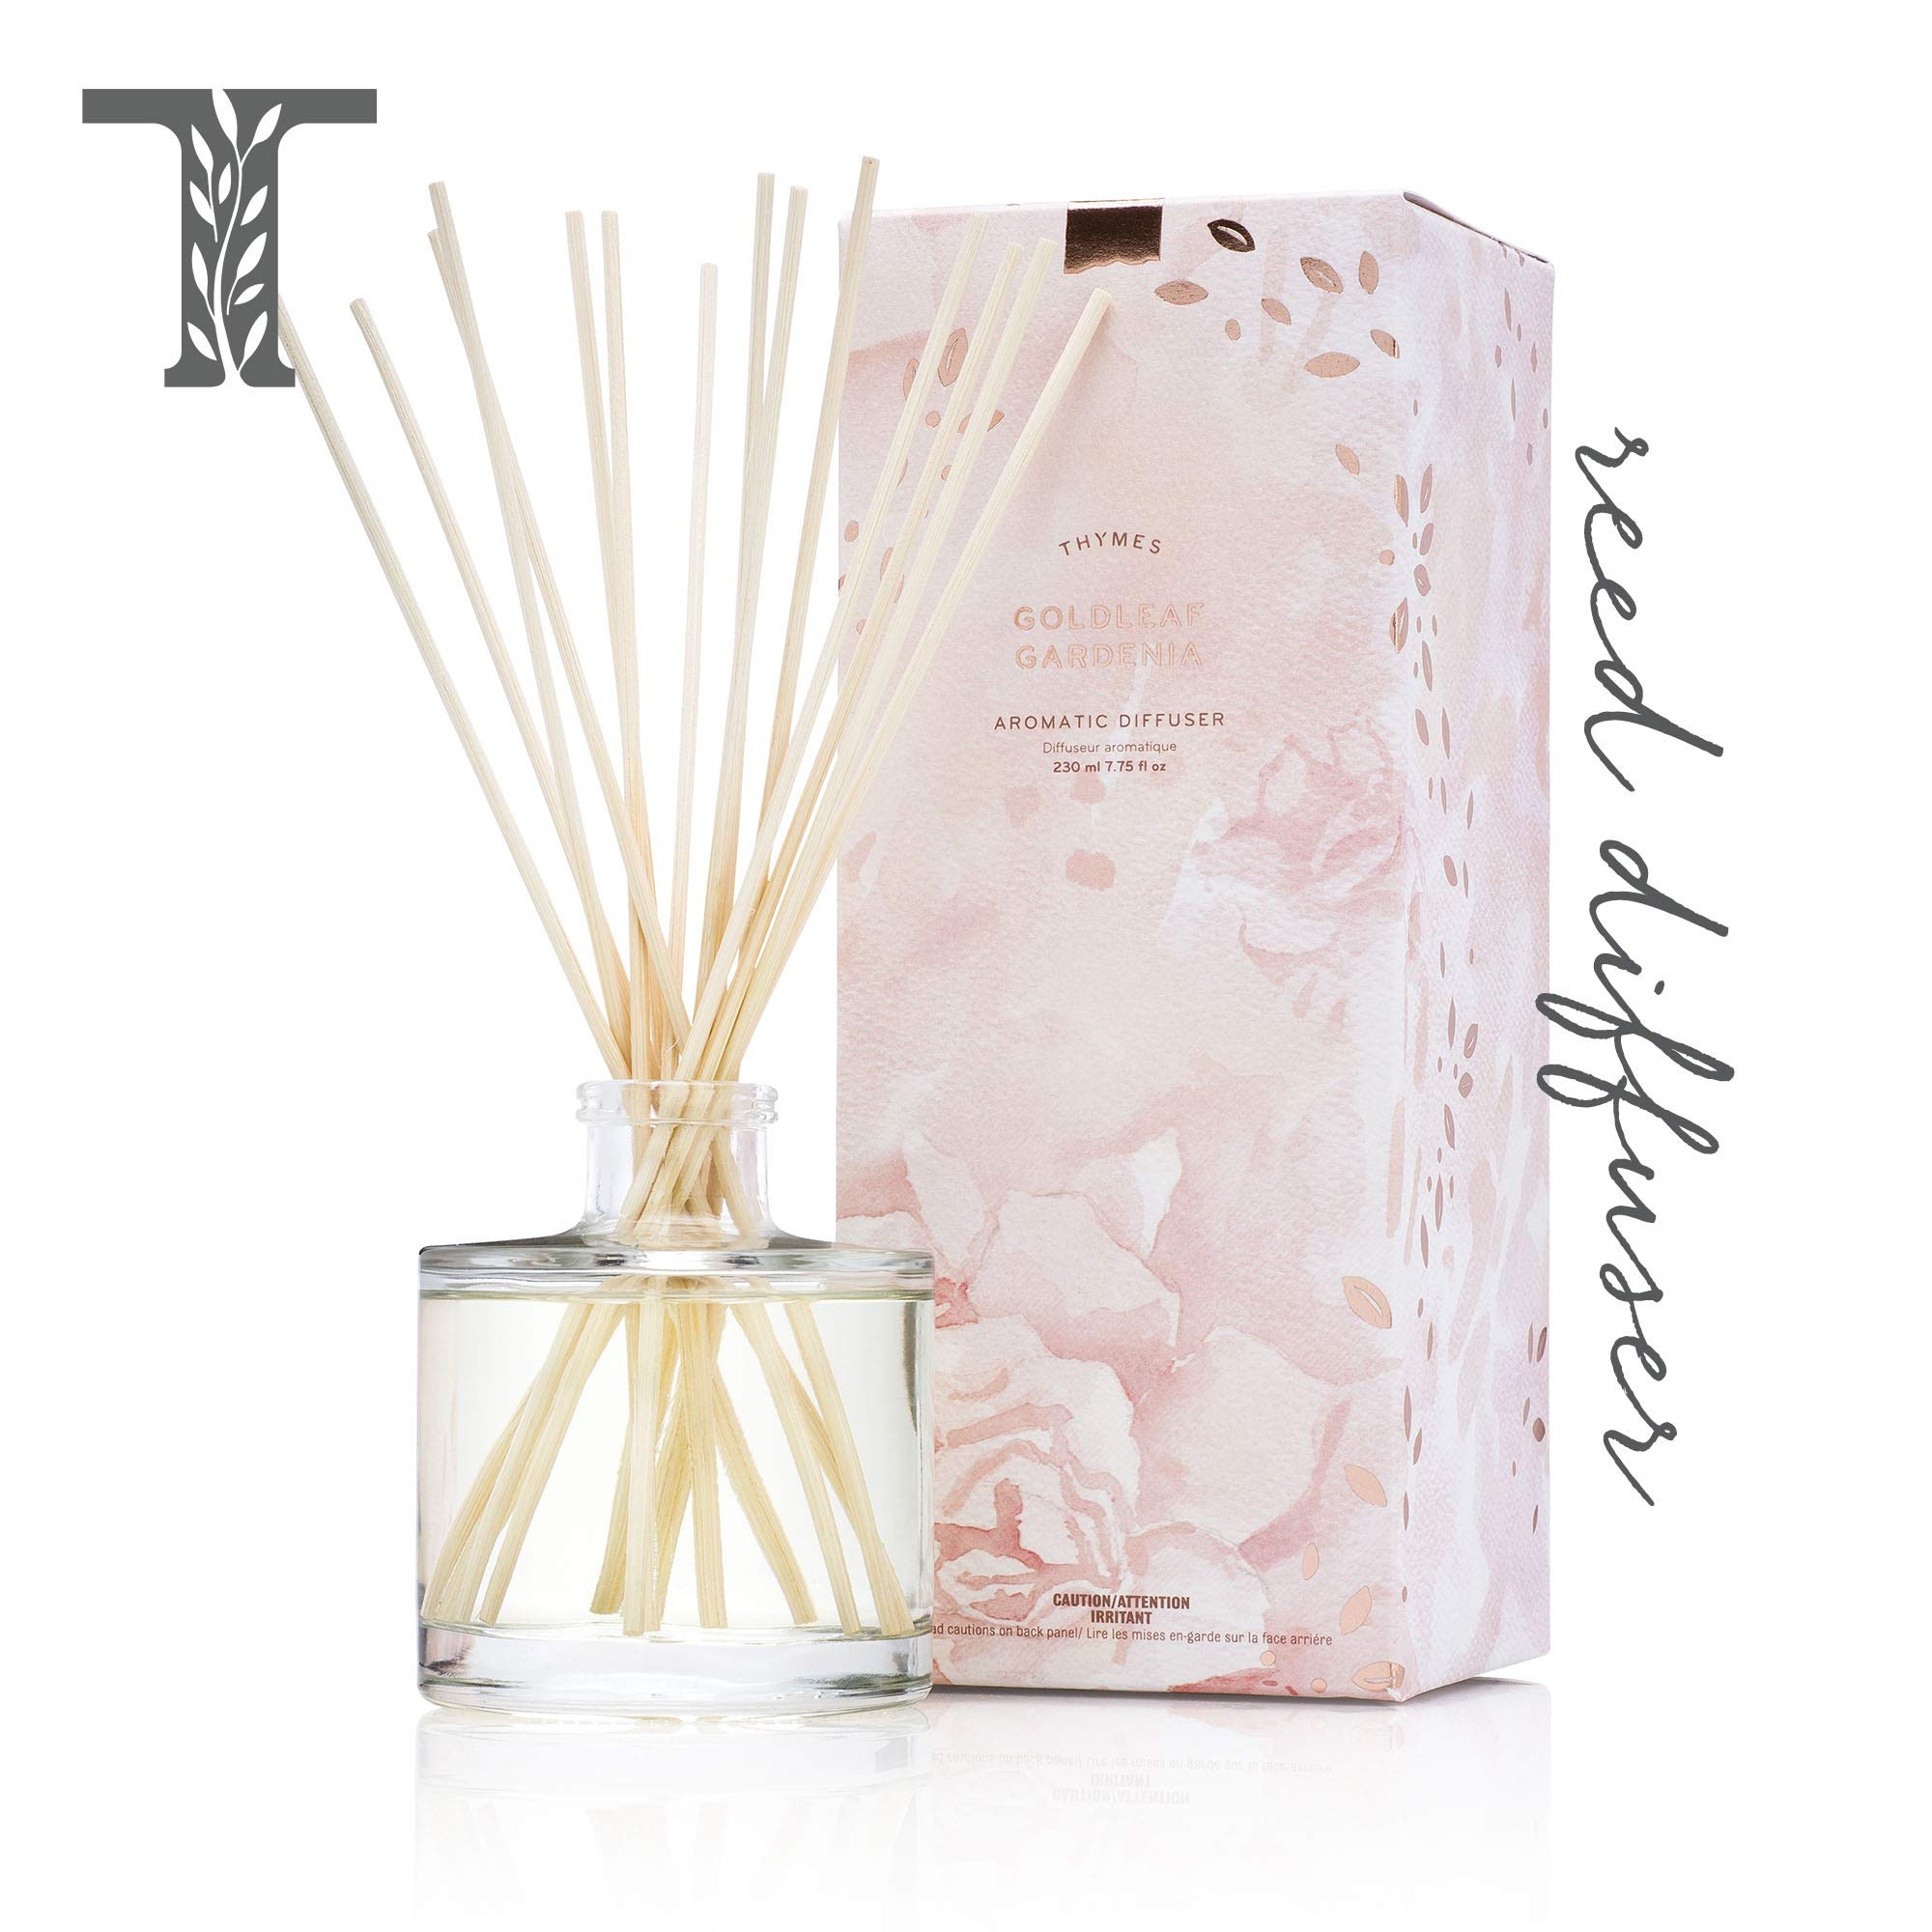 Thymes - Goldleaf Gardenia Aromatic Oil Reed Diffuser - Gift Set with Premium Sticks, Glass Bottle and Scented Oil - 6.5 oz by Thymes (Image #1)